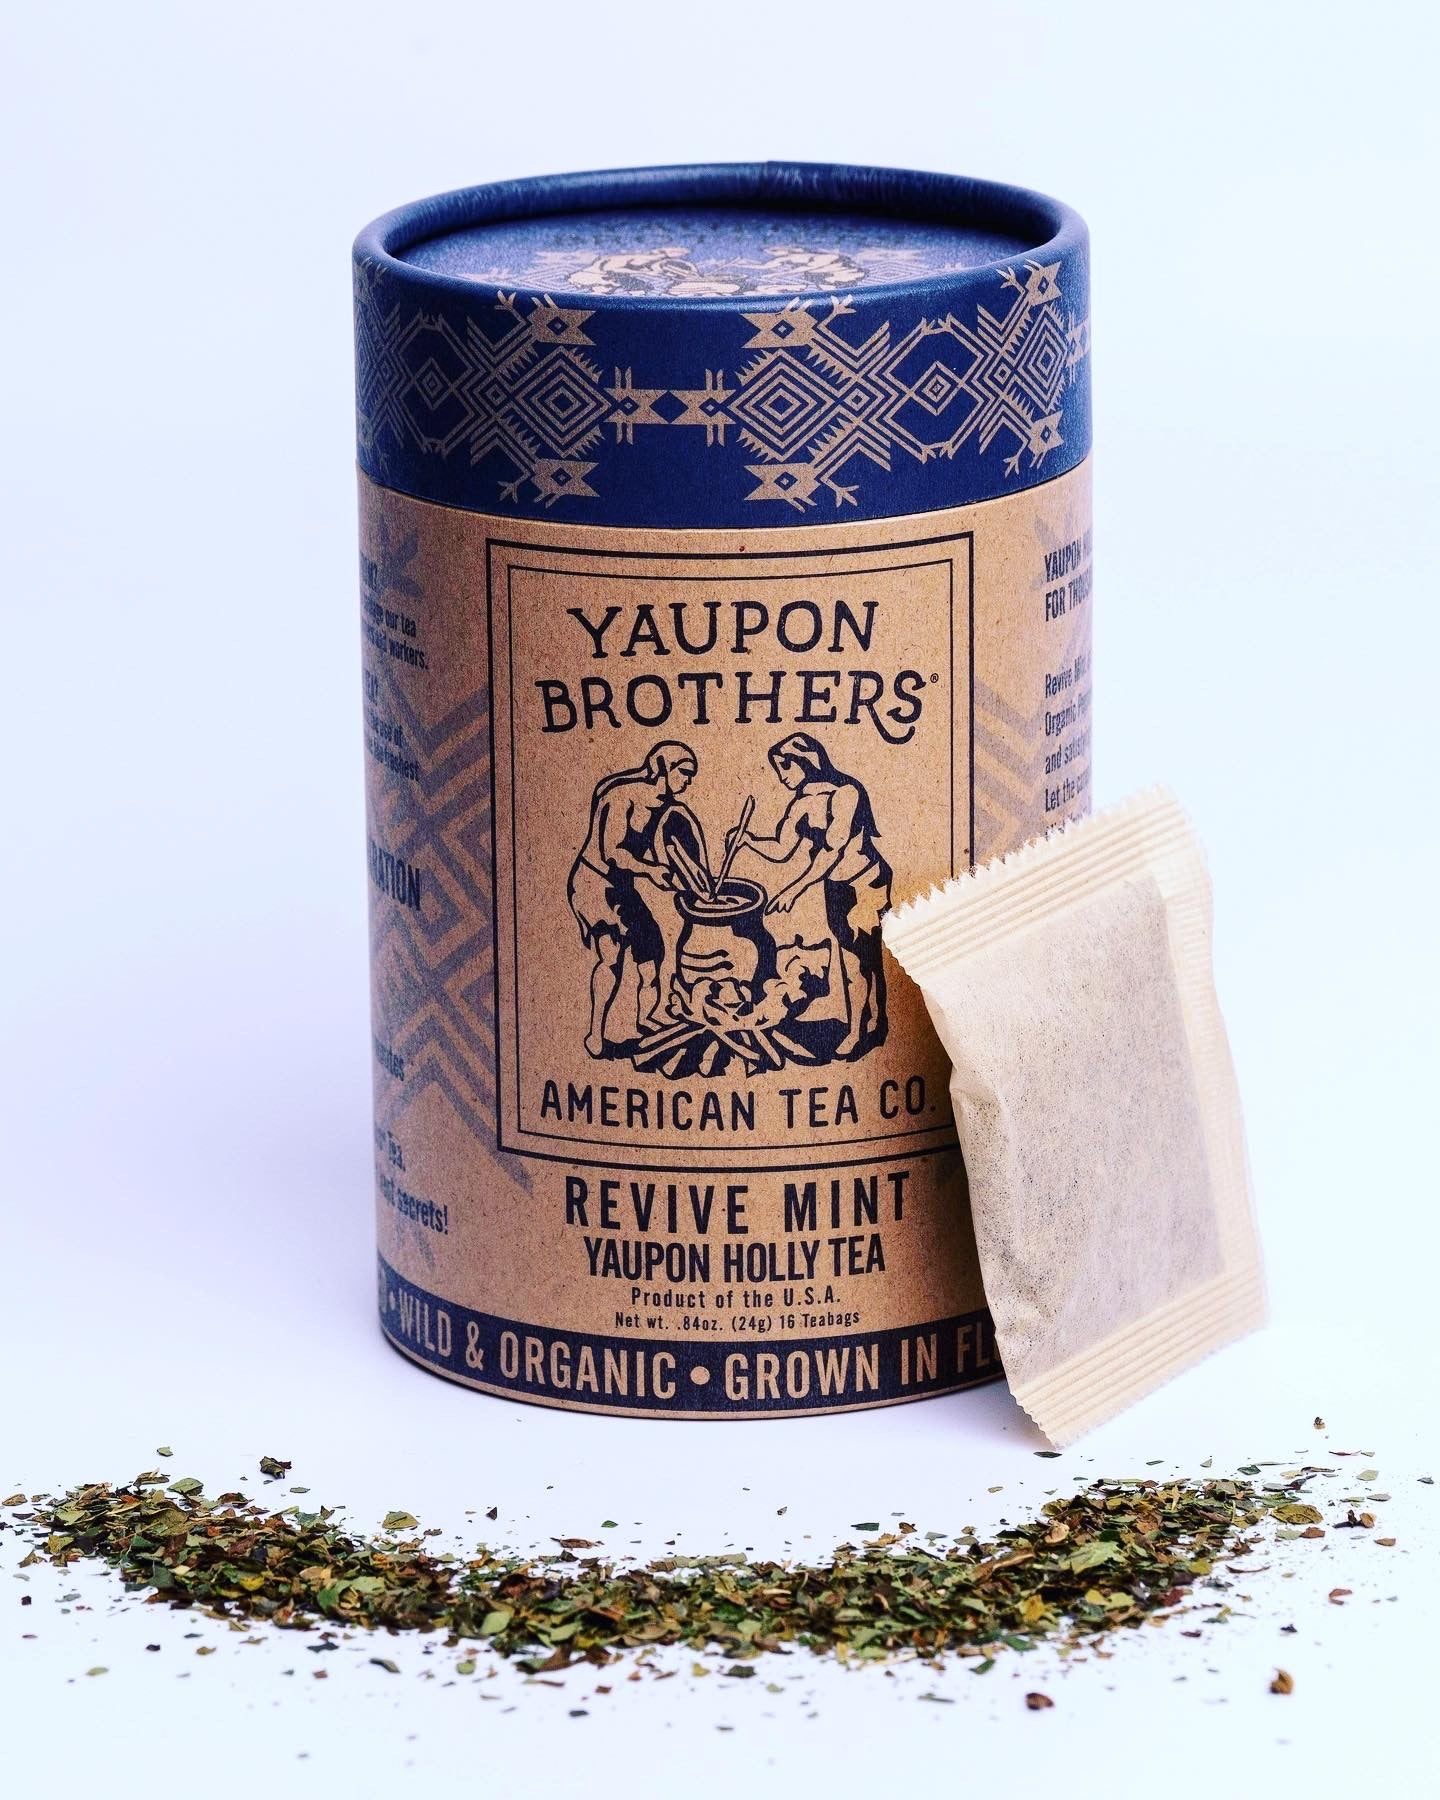 Yaupon Brothers American Tea Company Introduces Revive Mint as Newest Tea Blend